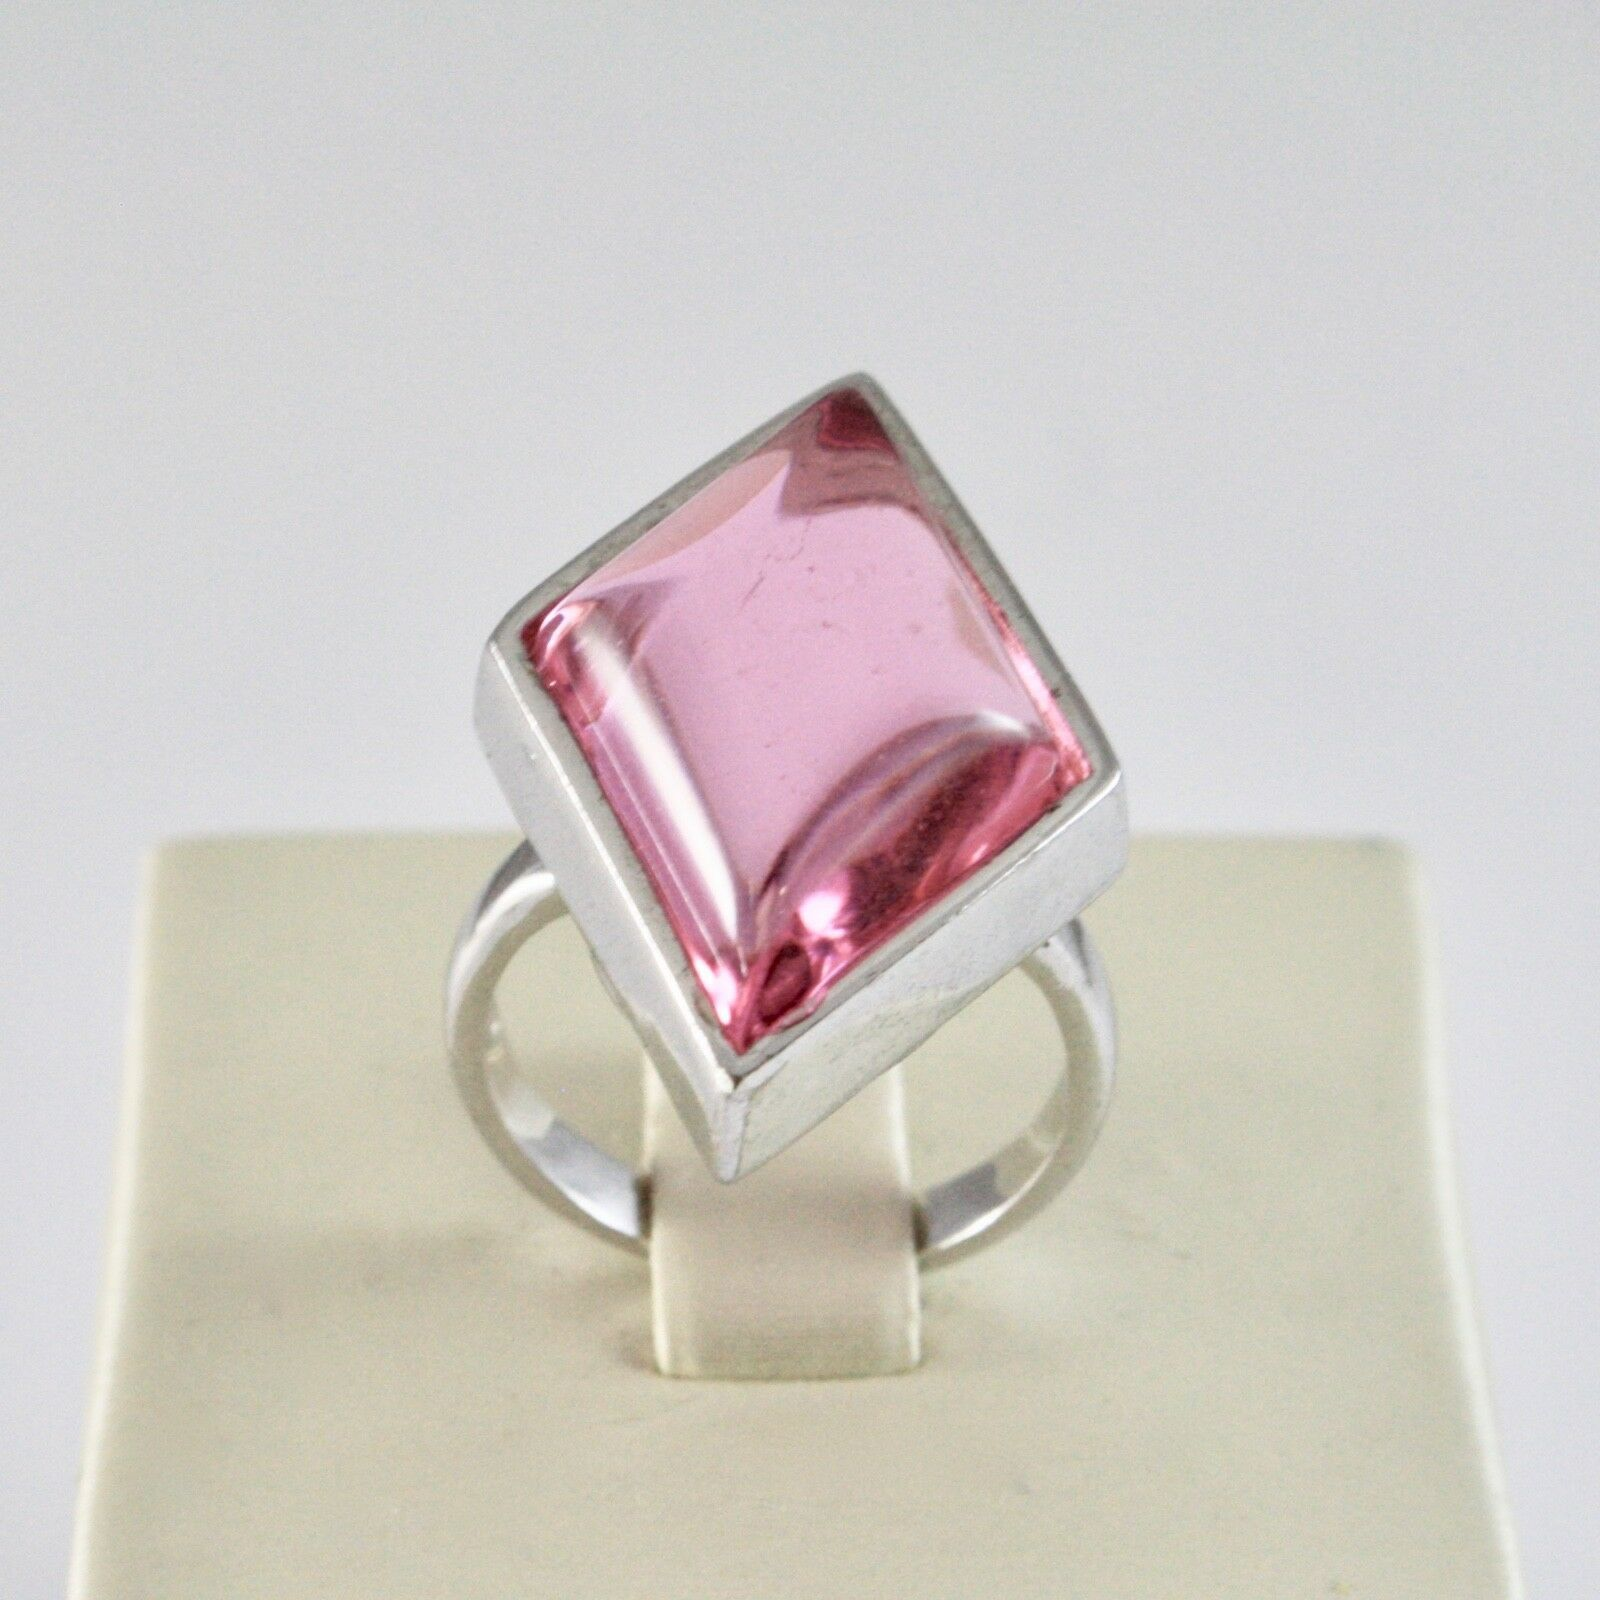 925 Silver Ring with Crystal Pink to Rhombus Cut Cabochon